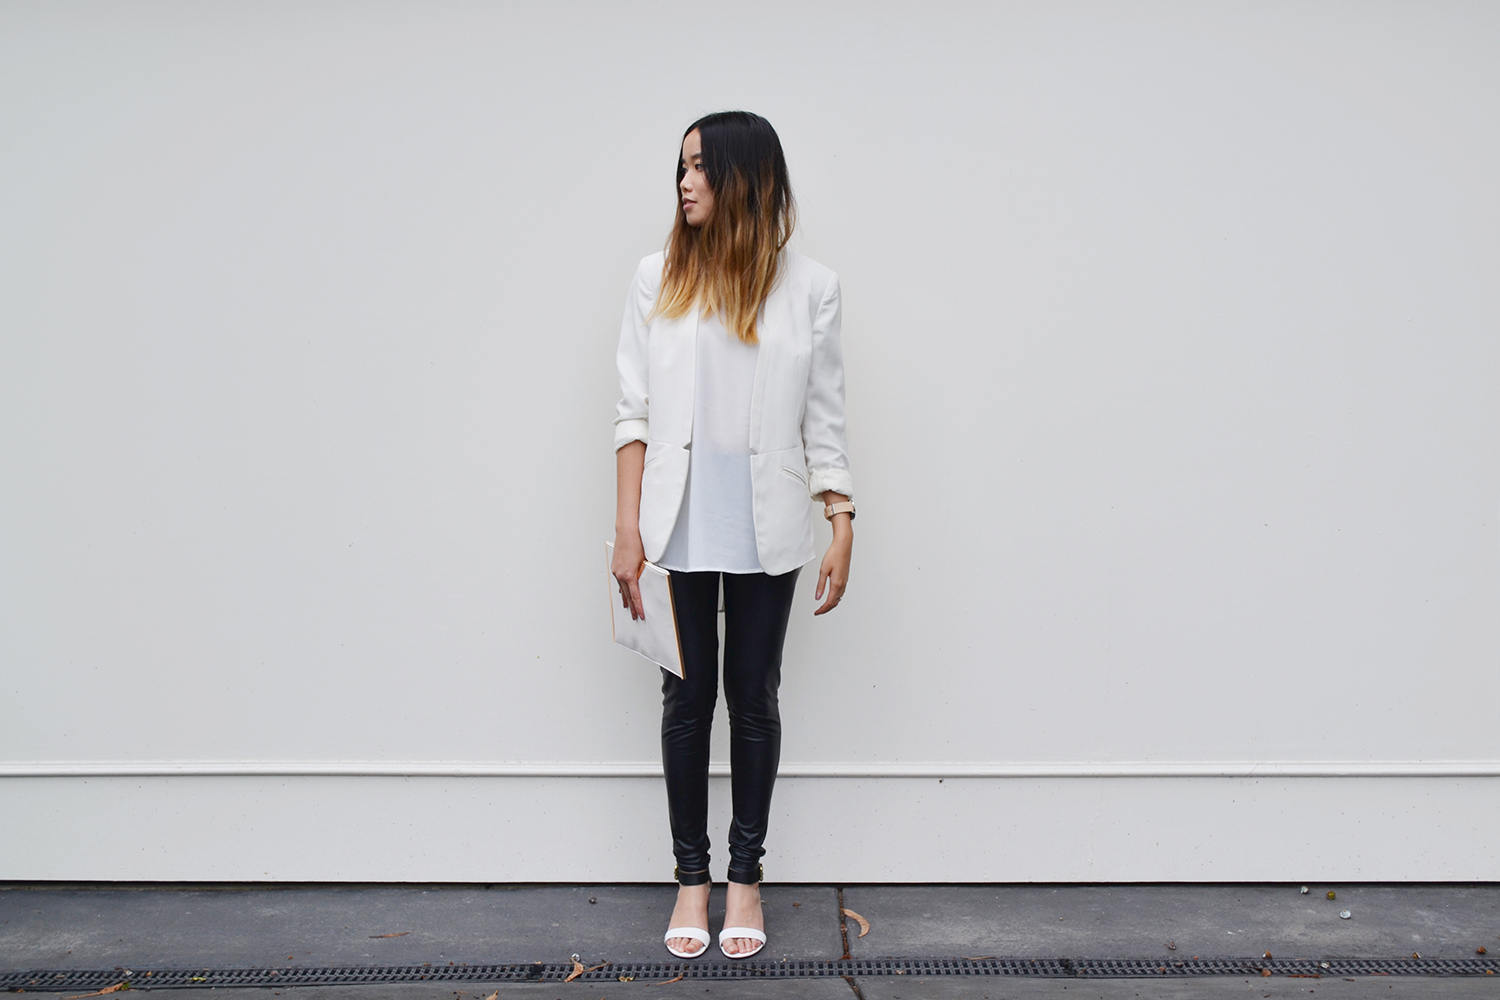 vivcha_melbourne_fashion_blogger_thehorse_watch_clutch_hm_blazer_style_2014_ombre_hair_shilla_label_heels.jpg